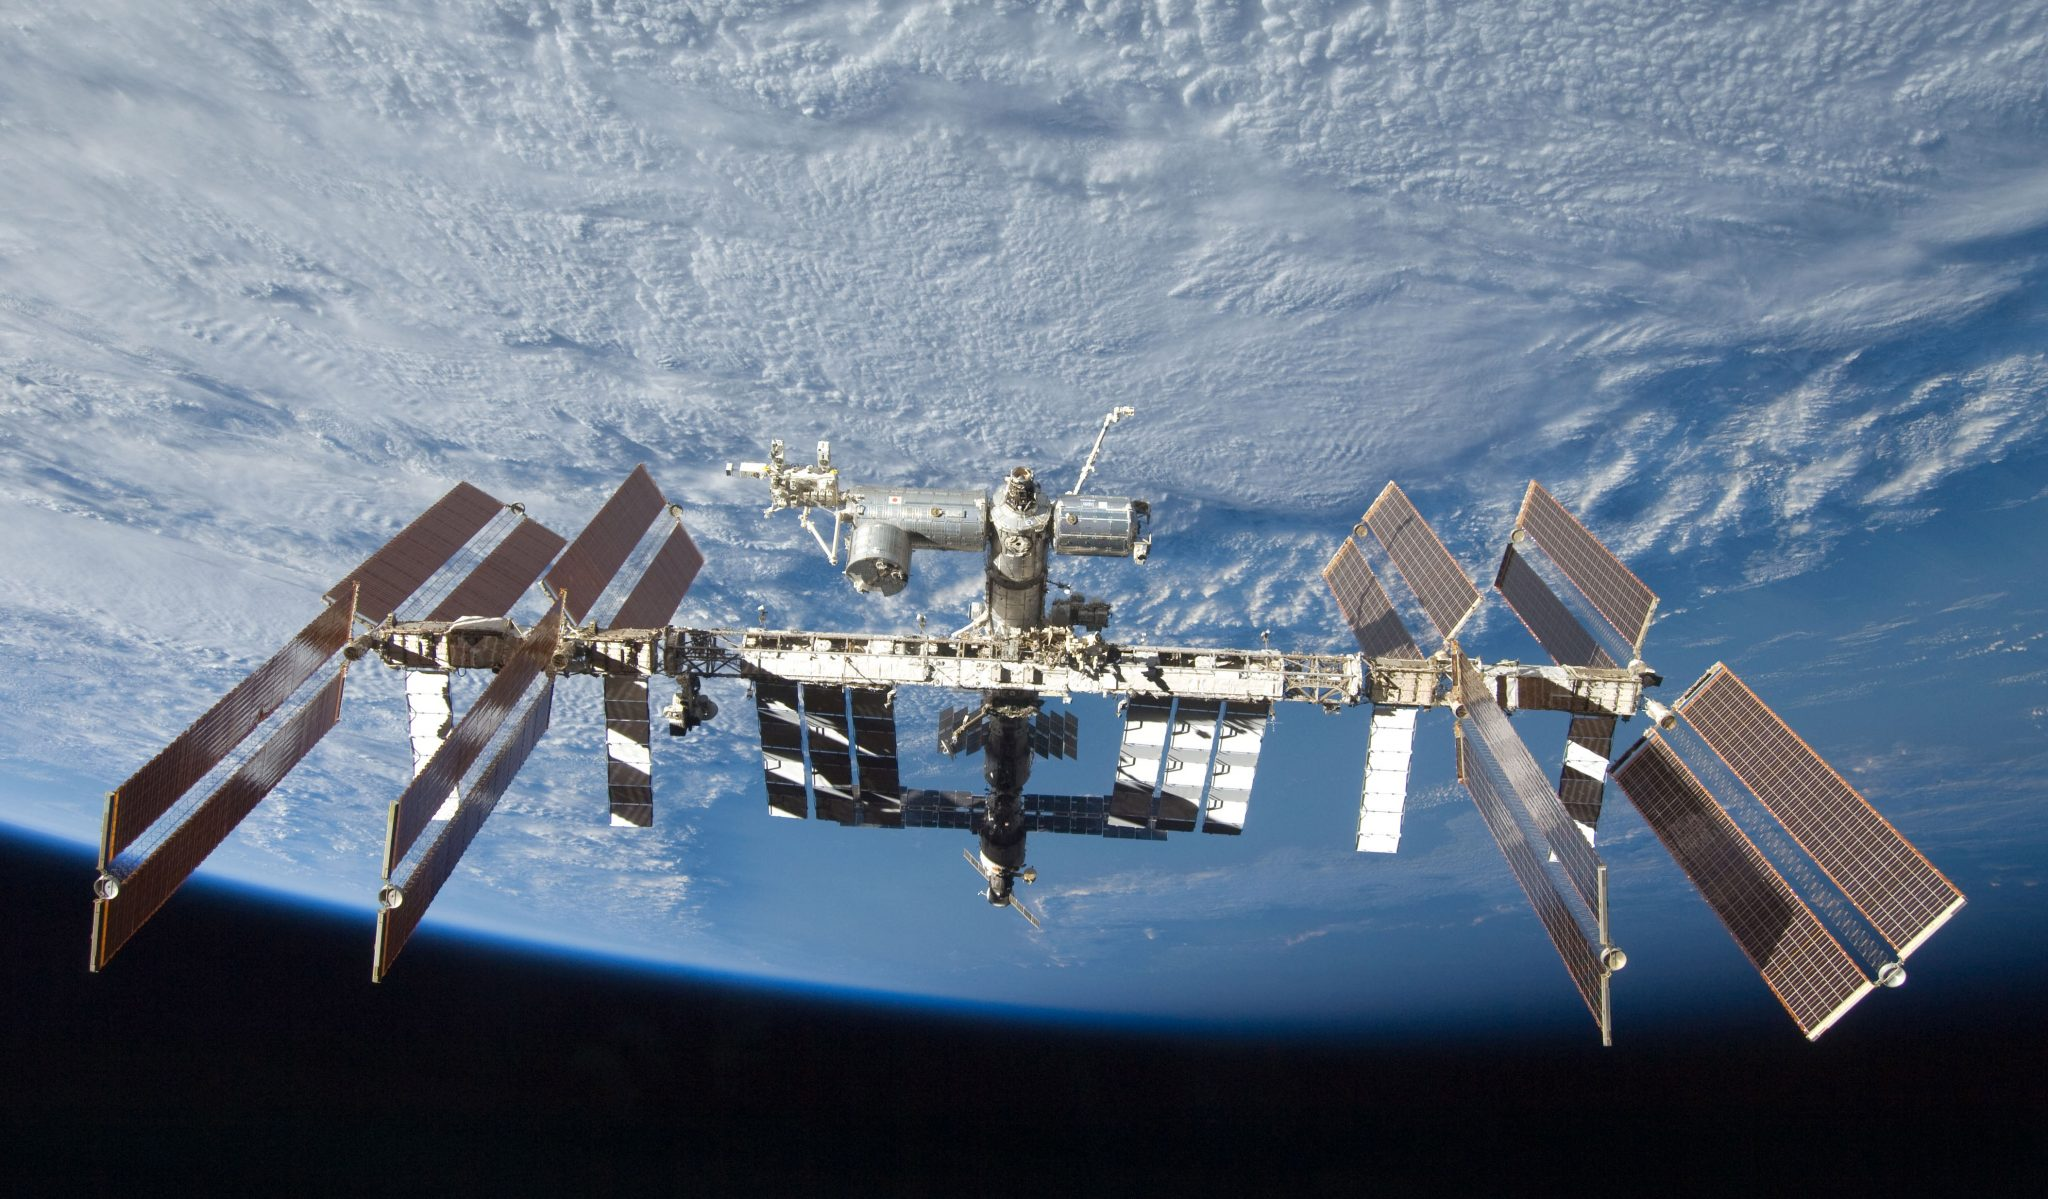 10.InternationalSpaceStation